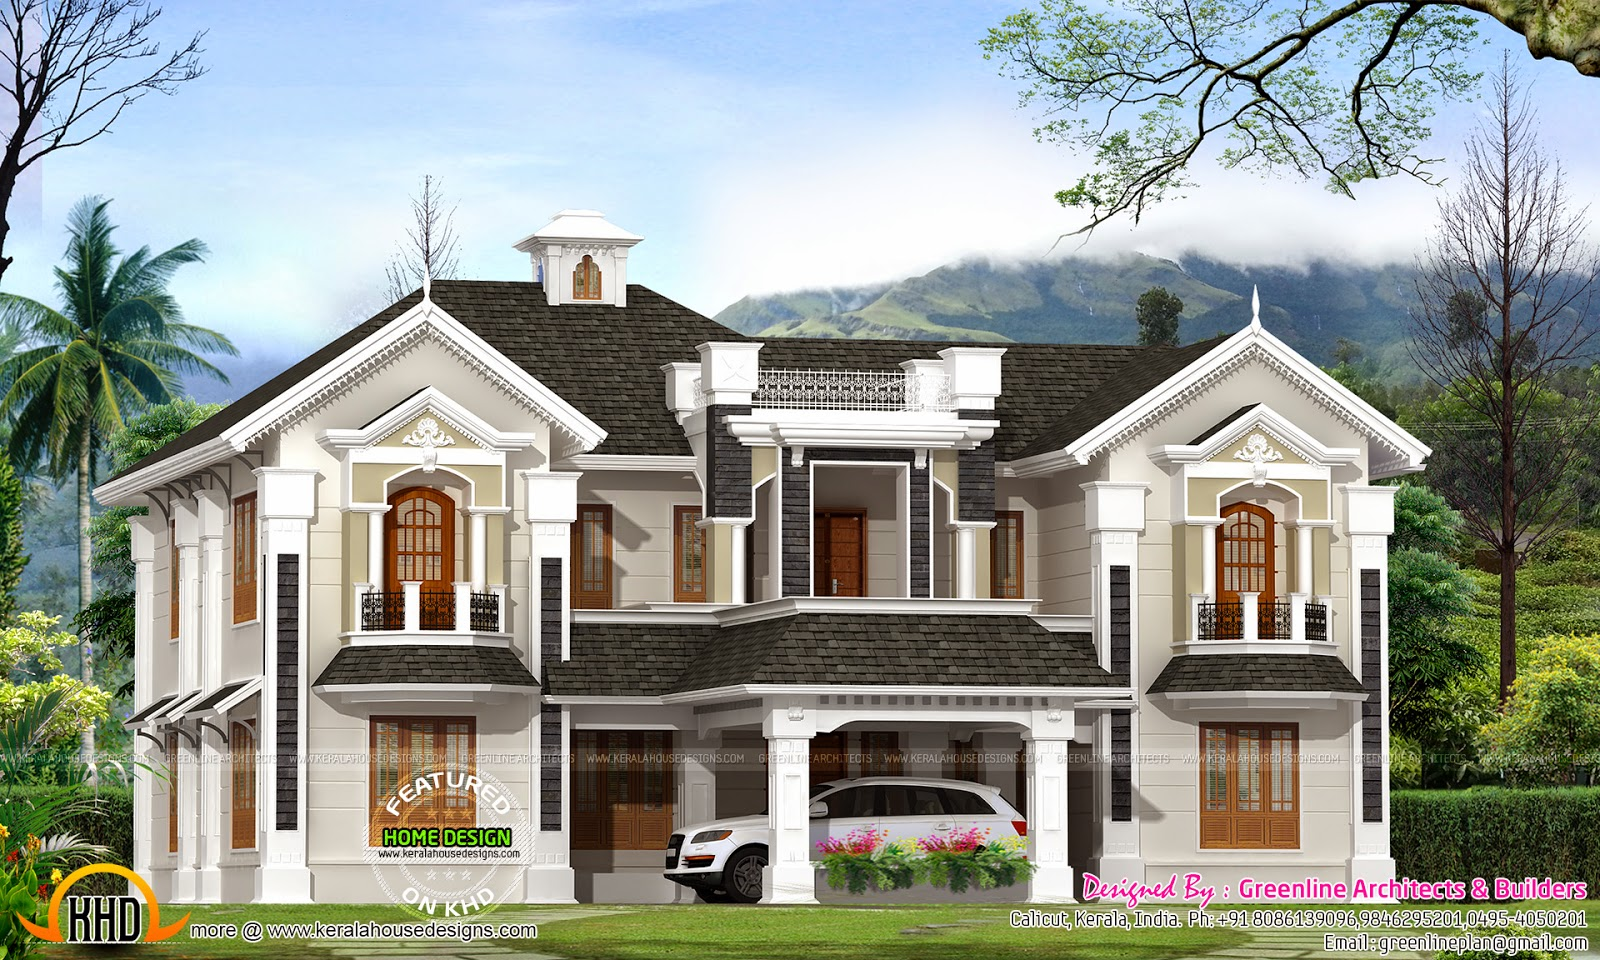 Colonial style house in kerala kerala home design and for Colonial house style